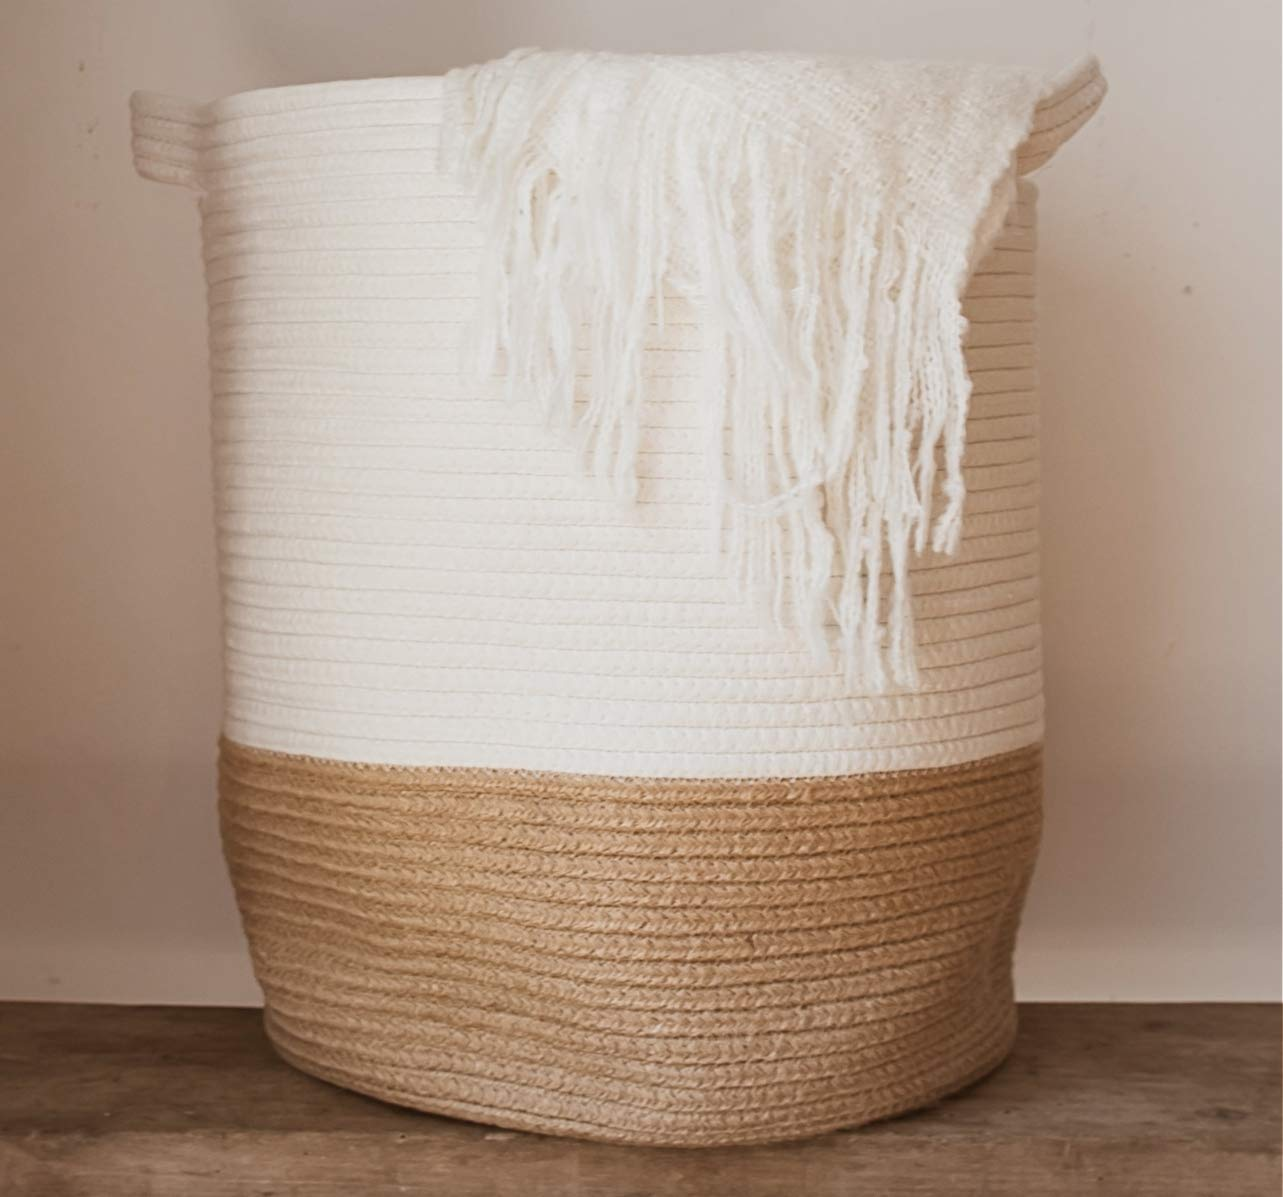 "Extra Large Woven Storage Baskets | 18"" x 14"" Decorative Blanket Basket, Use For Sofa Throws, Pillows, Towels, Toys or Nursery 